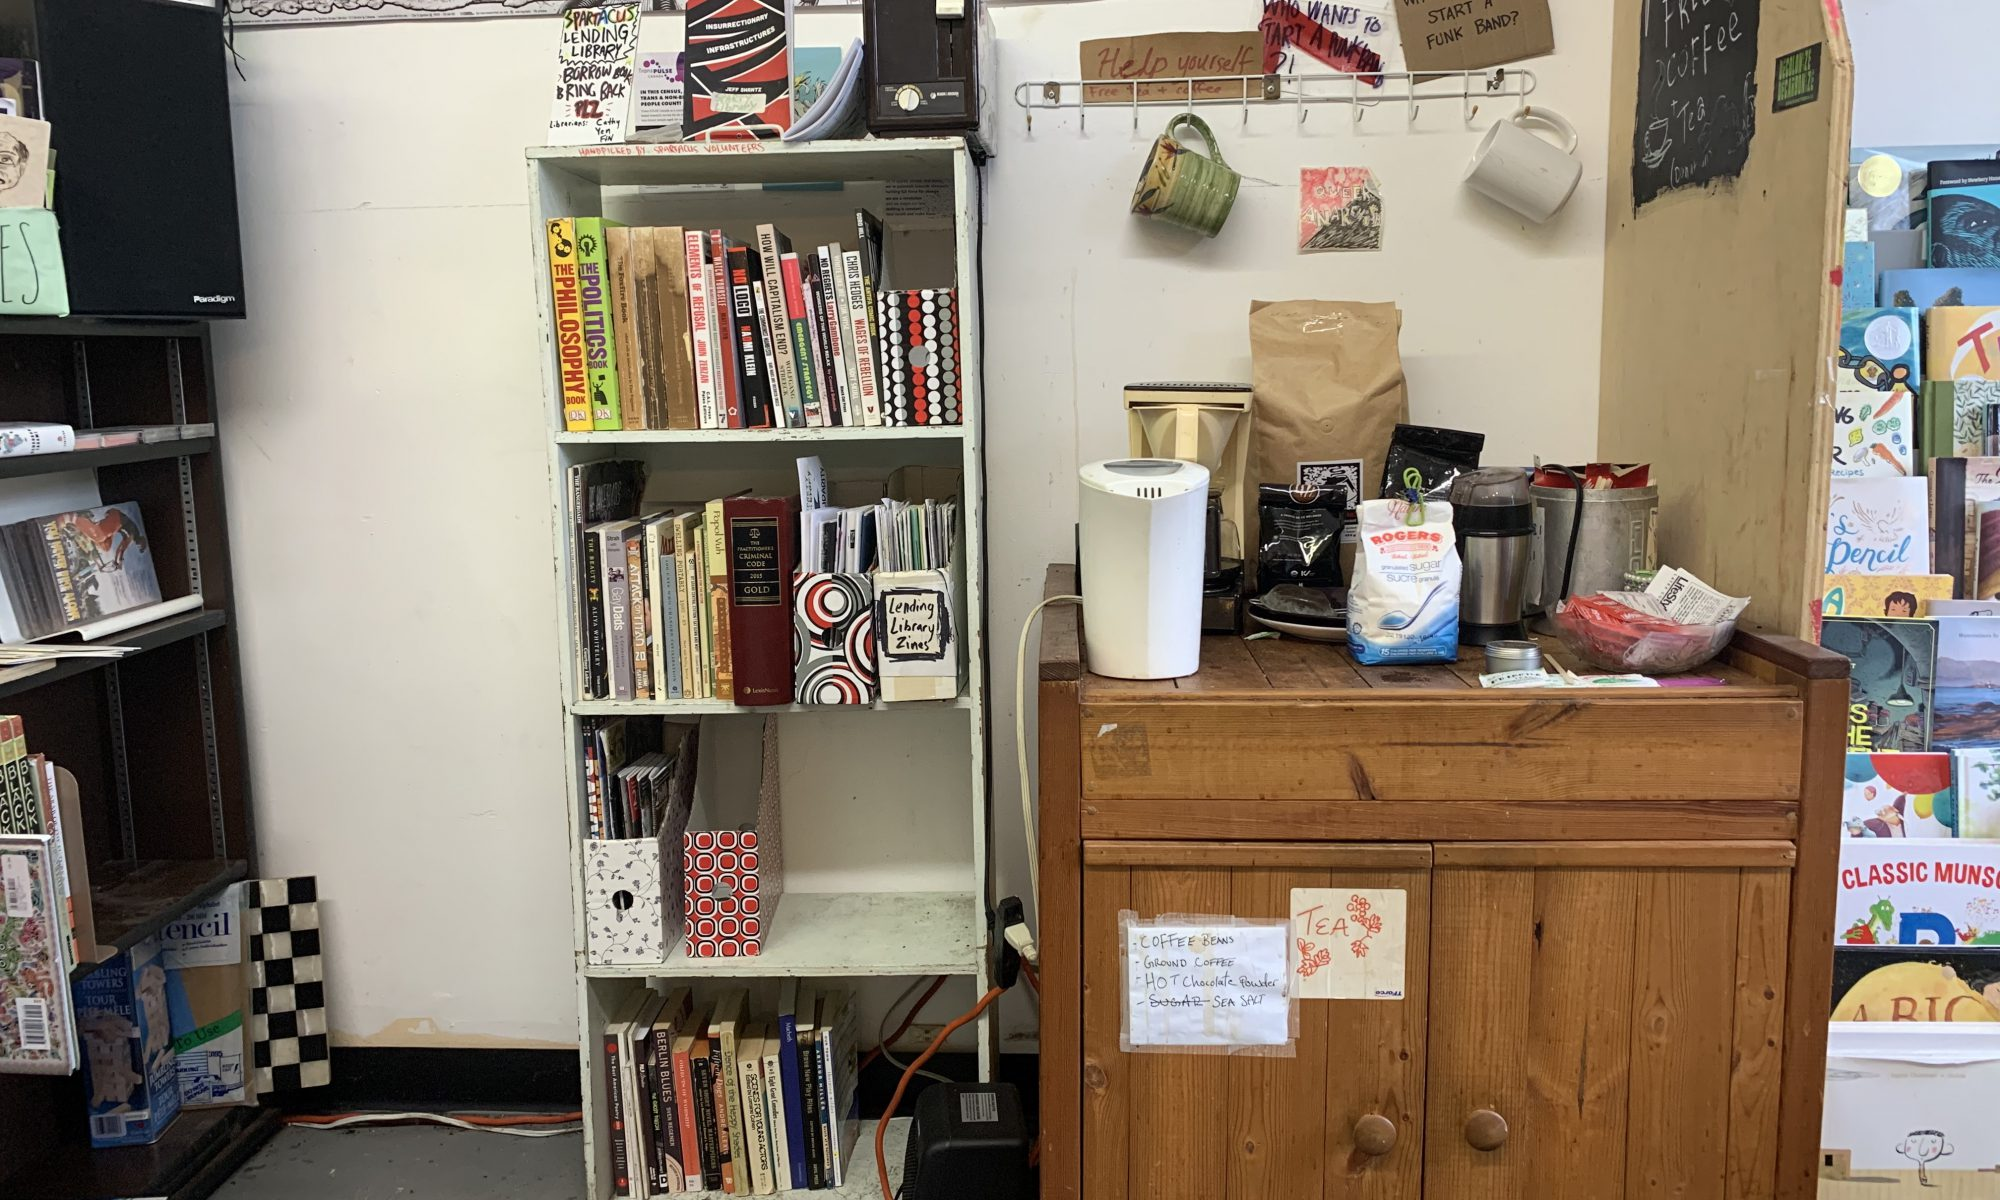 Spartacus lending library. Small white bookcase with 4 shelves of books. A toaster and more books are on top. To the right is a low cabinet with supplies for making coffee and tea.